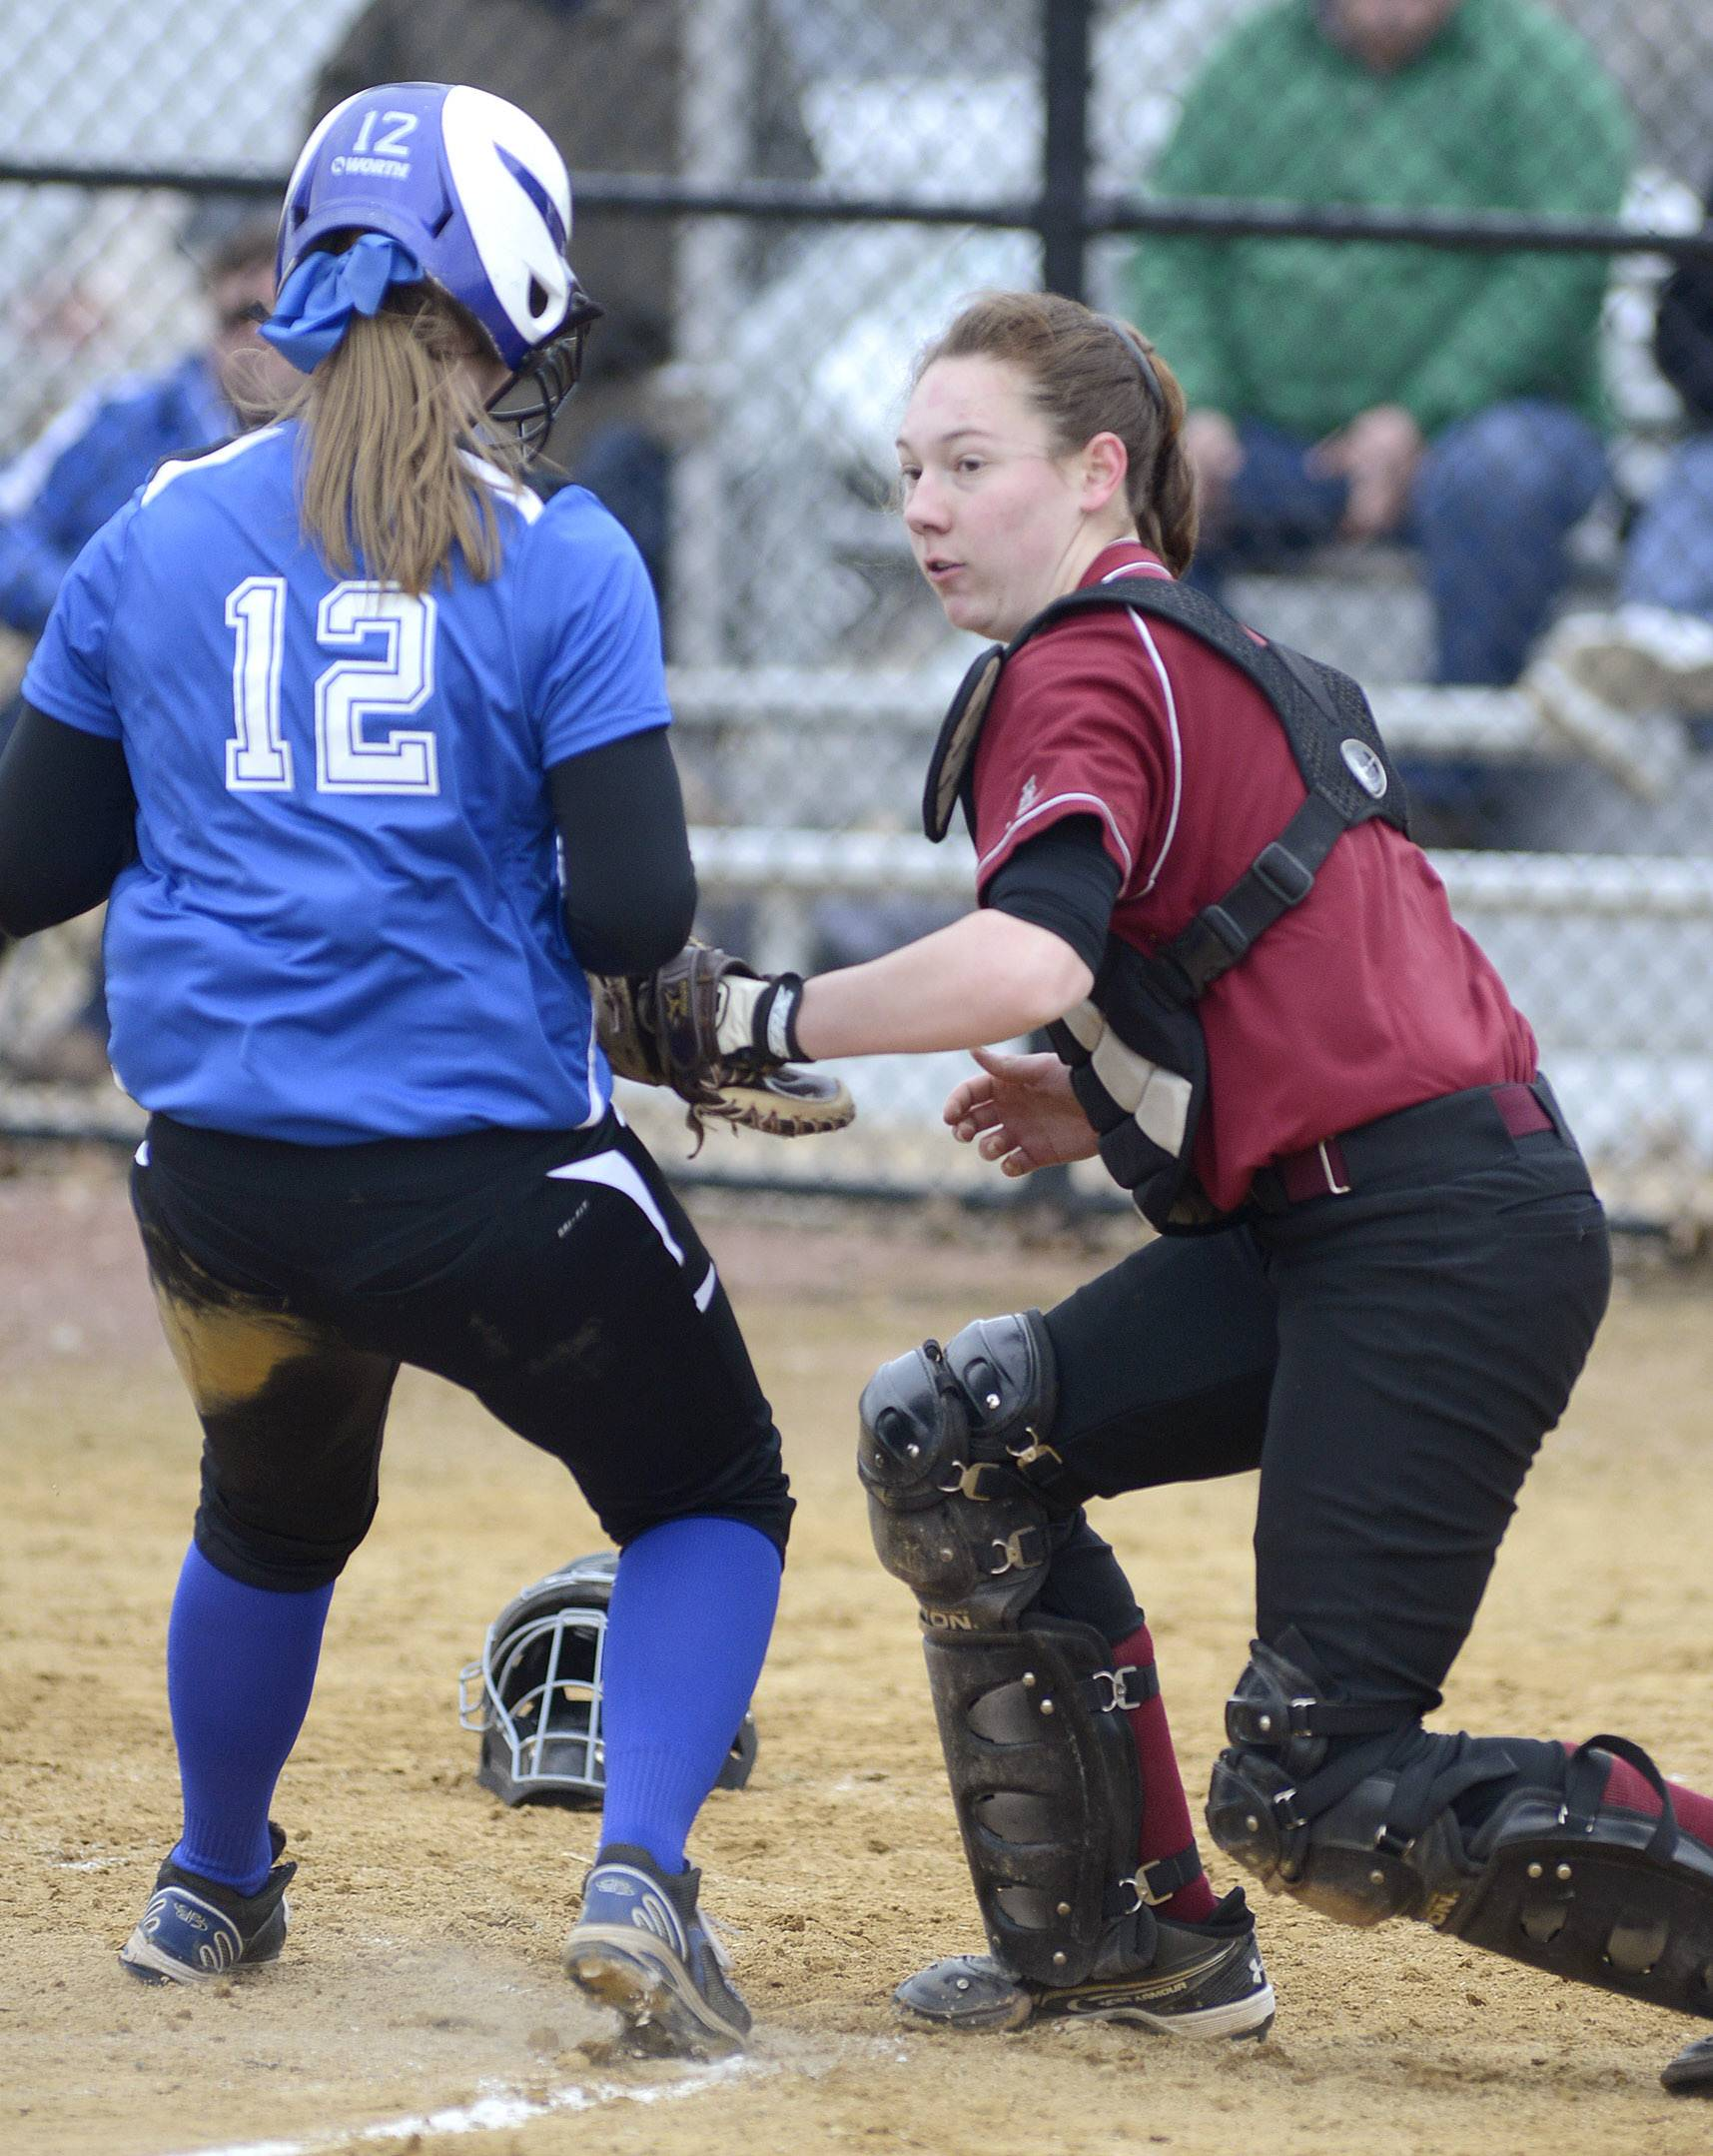 Laura Stoecker/lstoecker@dailyherald.comSt. Charles North's Abby Howlett, meets Schaumburg catcher Elaine Walker at home plate in the first inning on Wednesday, April 2.